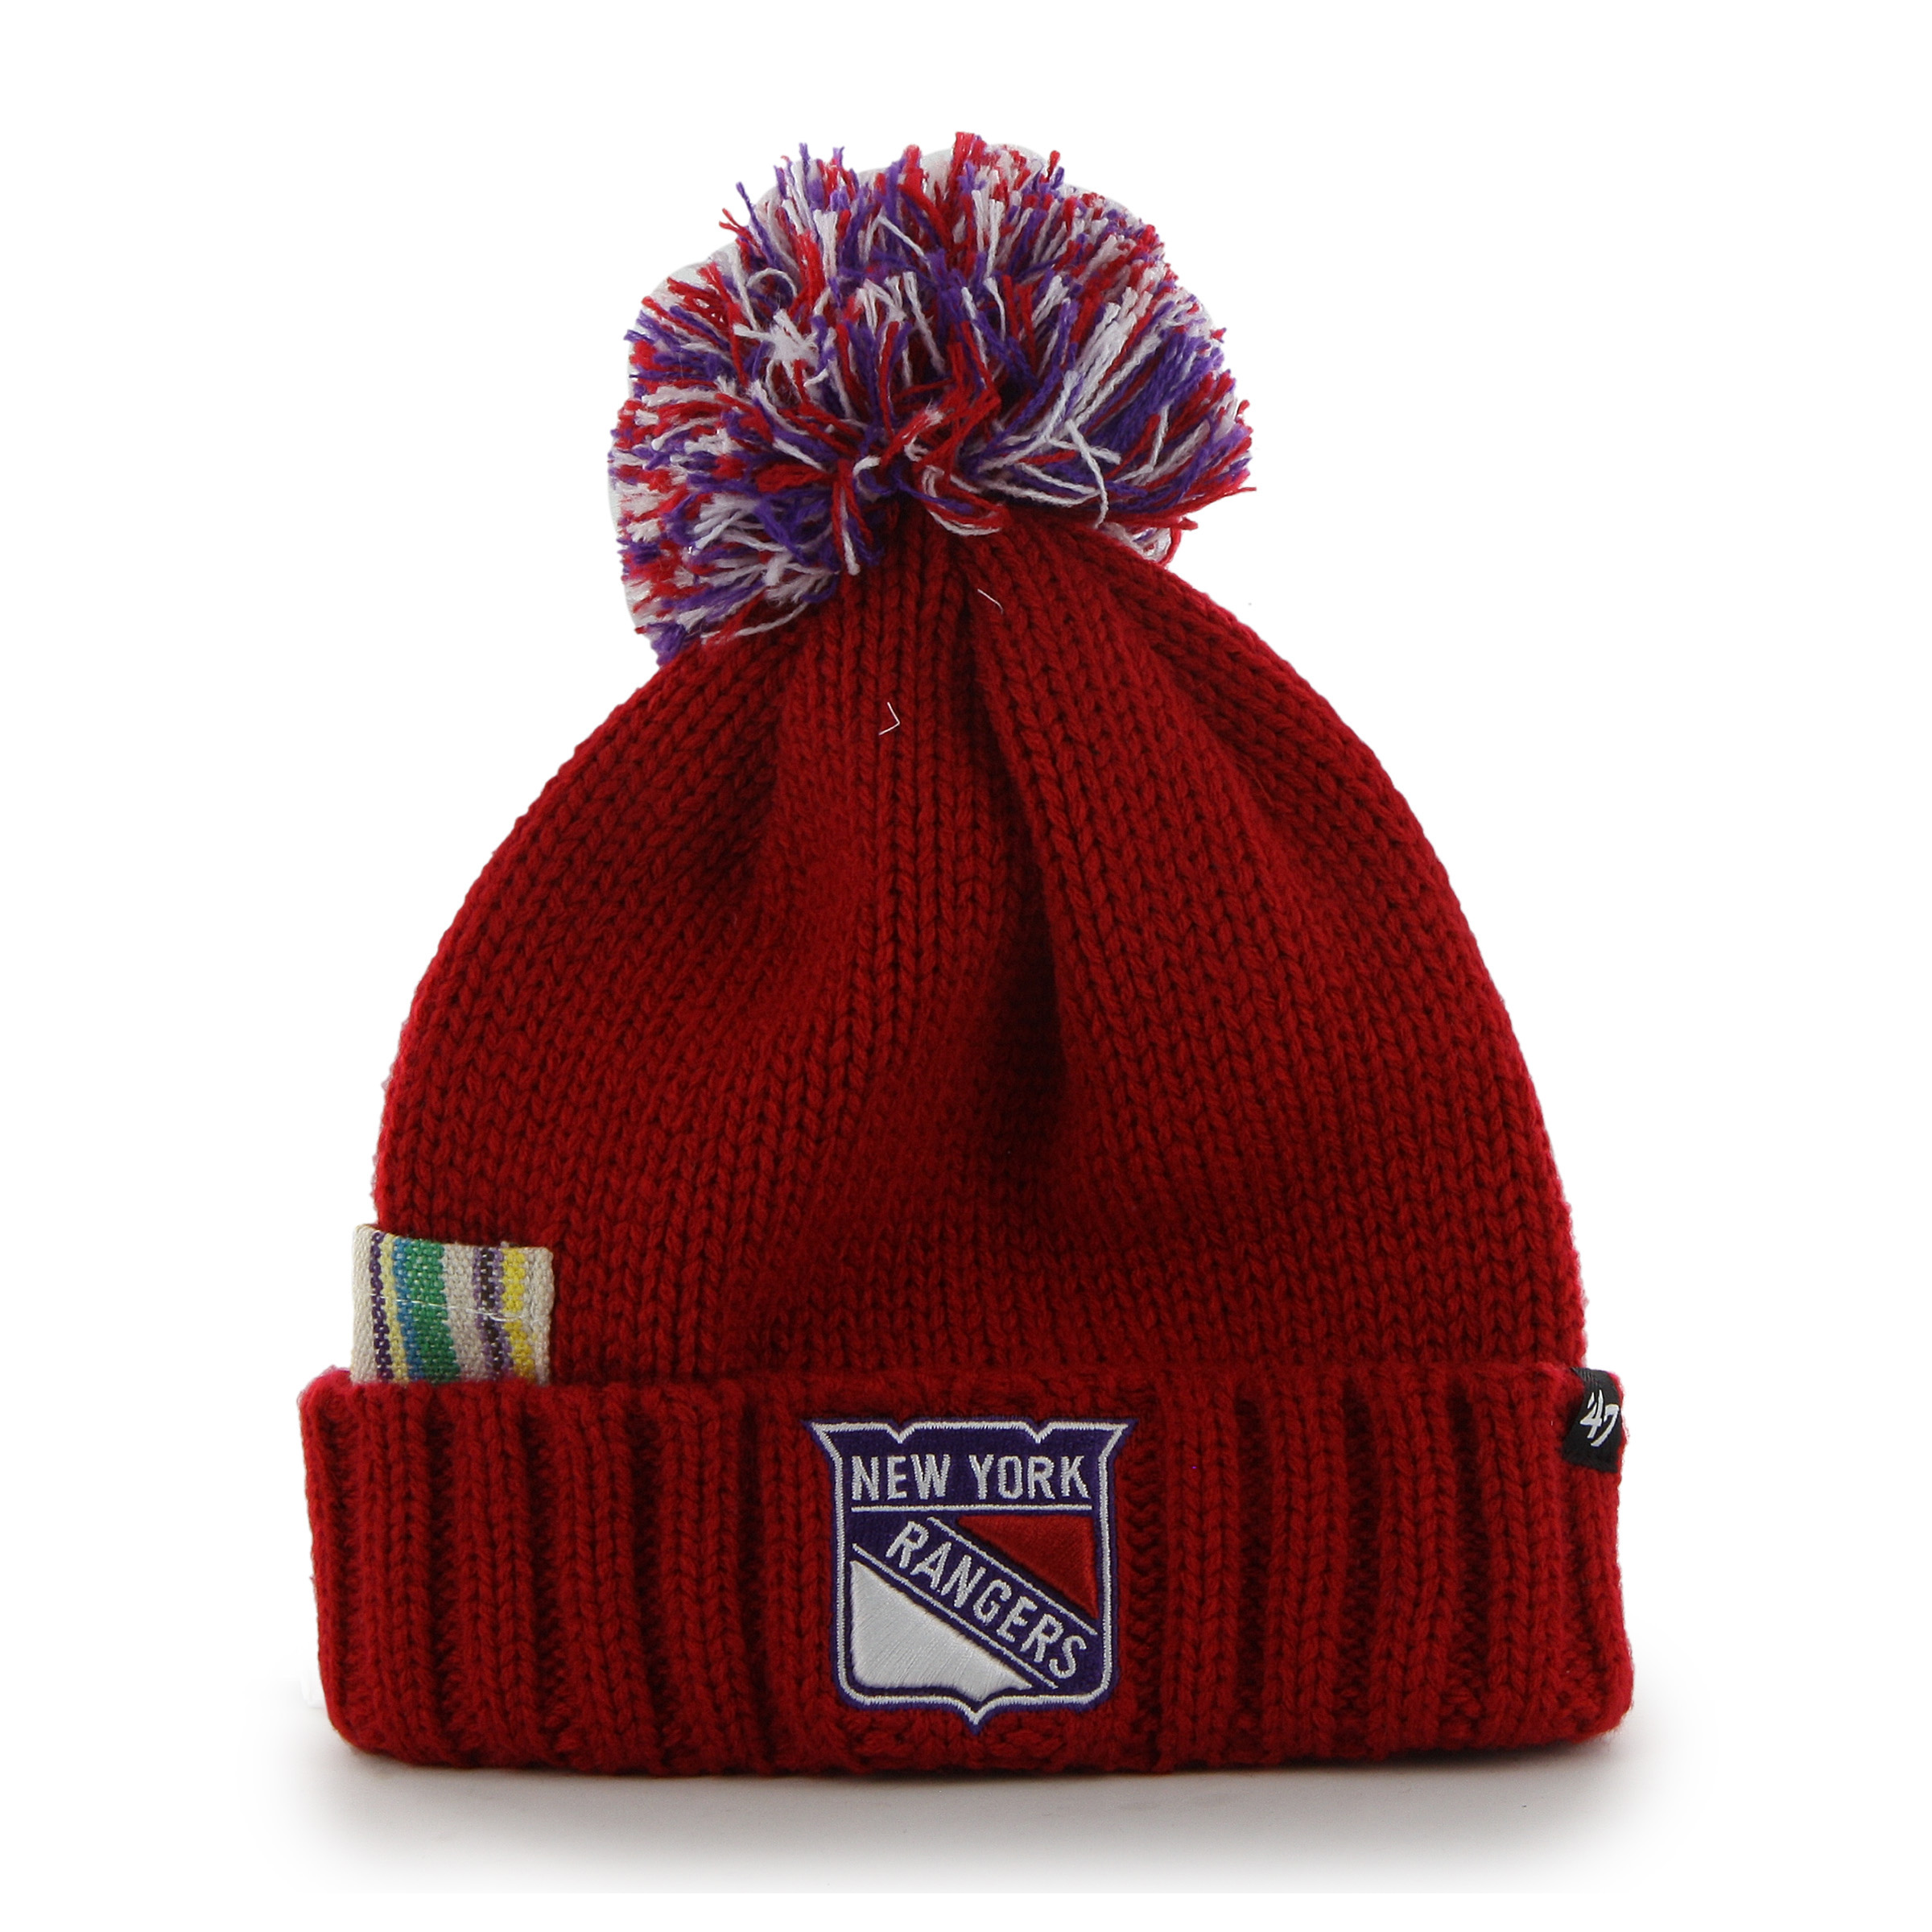 New York Rangers Pappas Cuff Knit